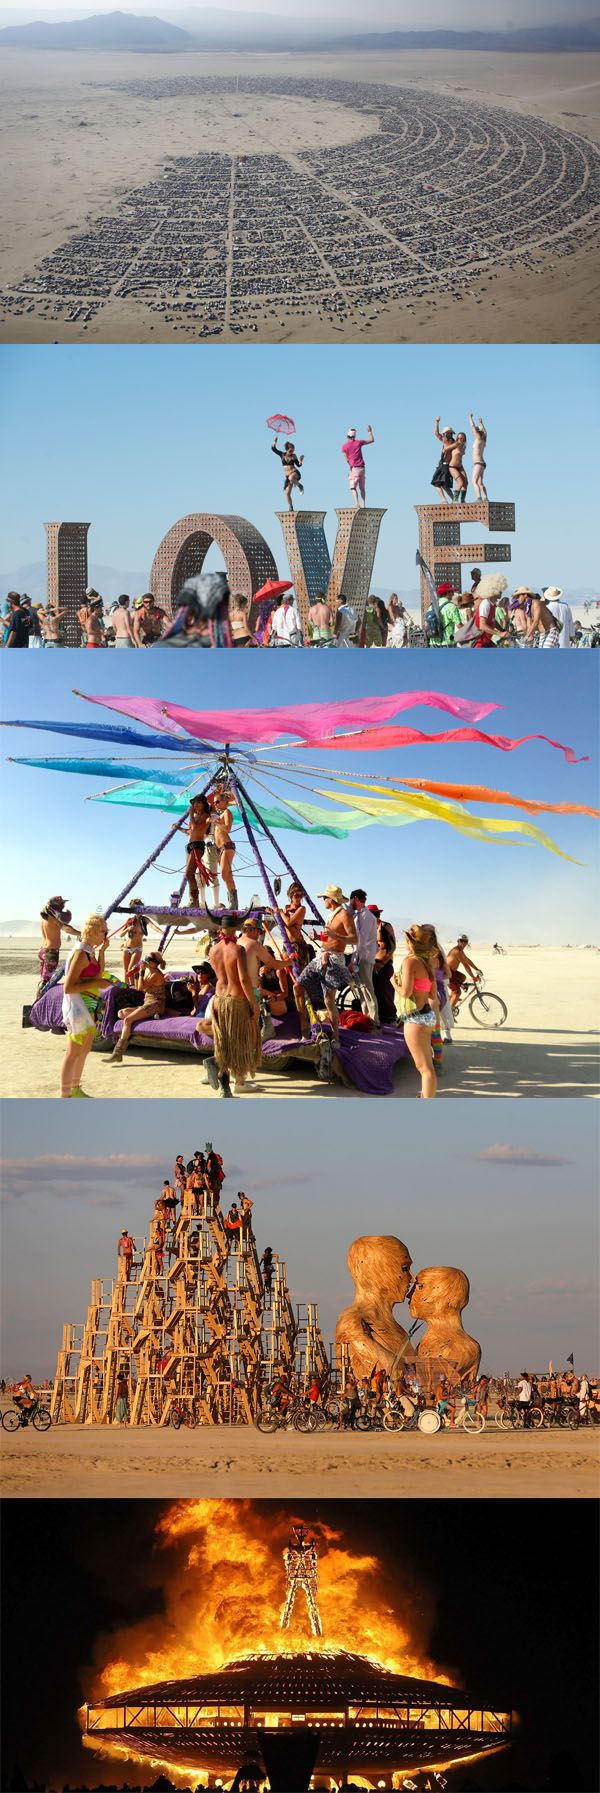 a cultural and artistic phenomenon burningman encourages burgeoning artists self expression